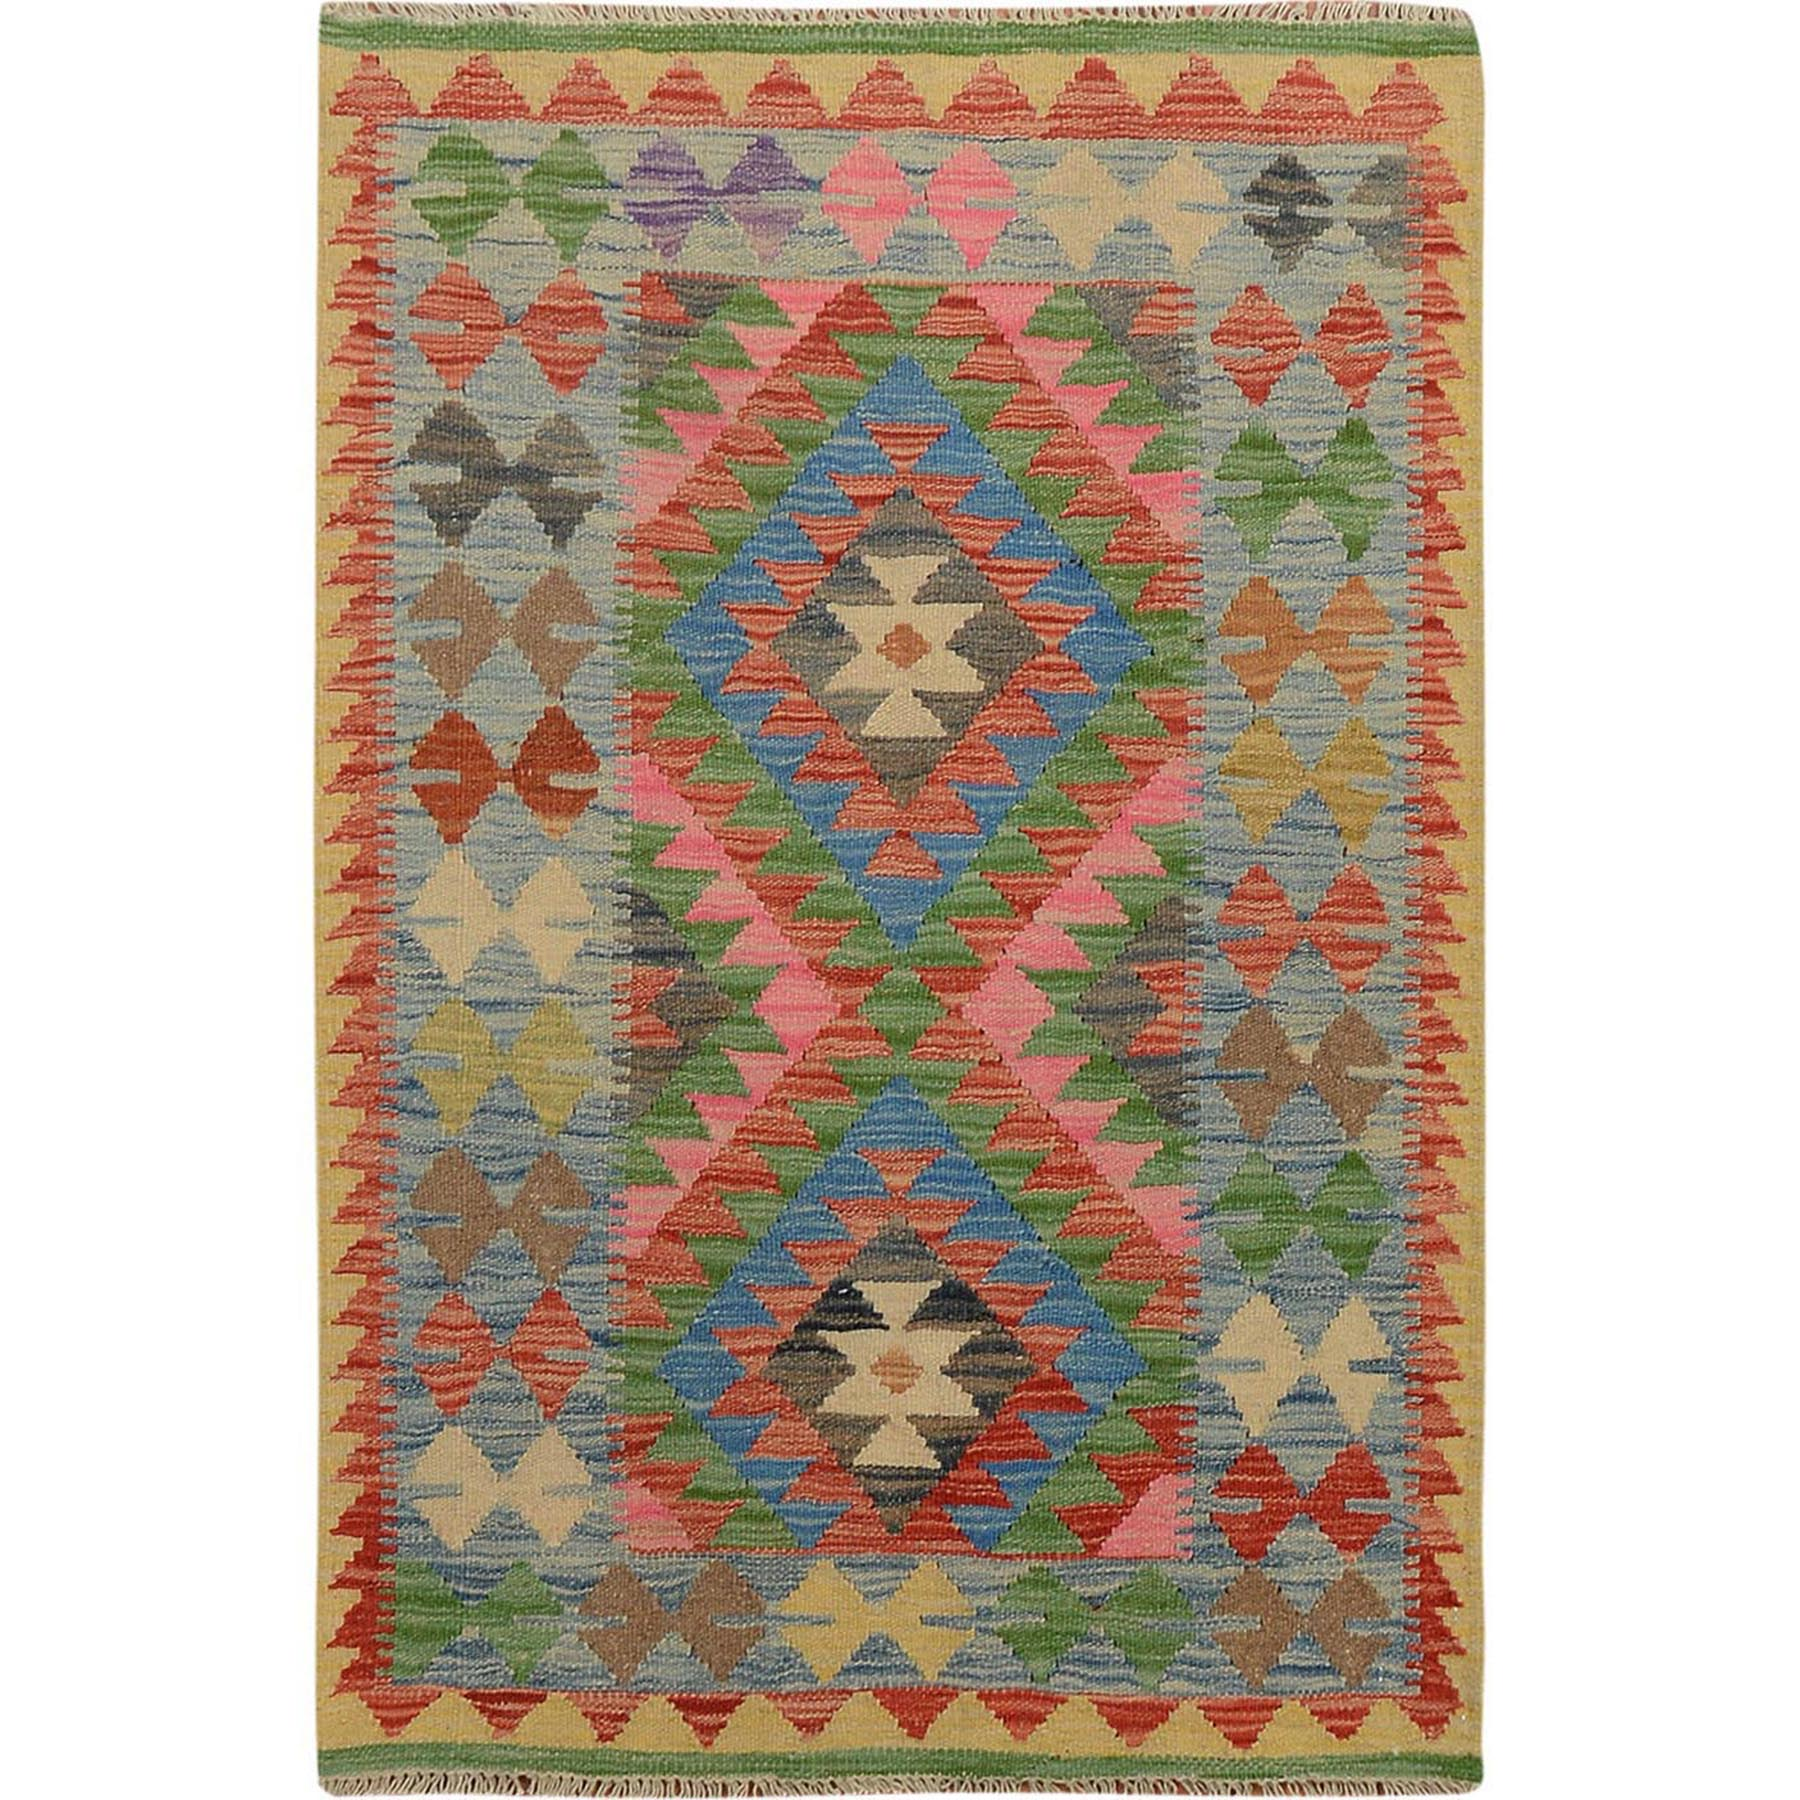 "2'8""x4' Colorful Reversible Afghan Kilim Vegetable Dyes Pure Wool Hand Woven Oriental Rug"